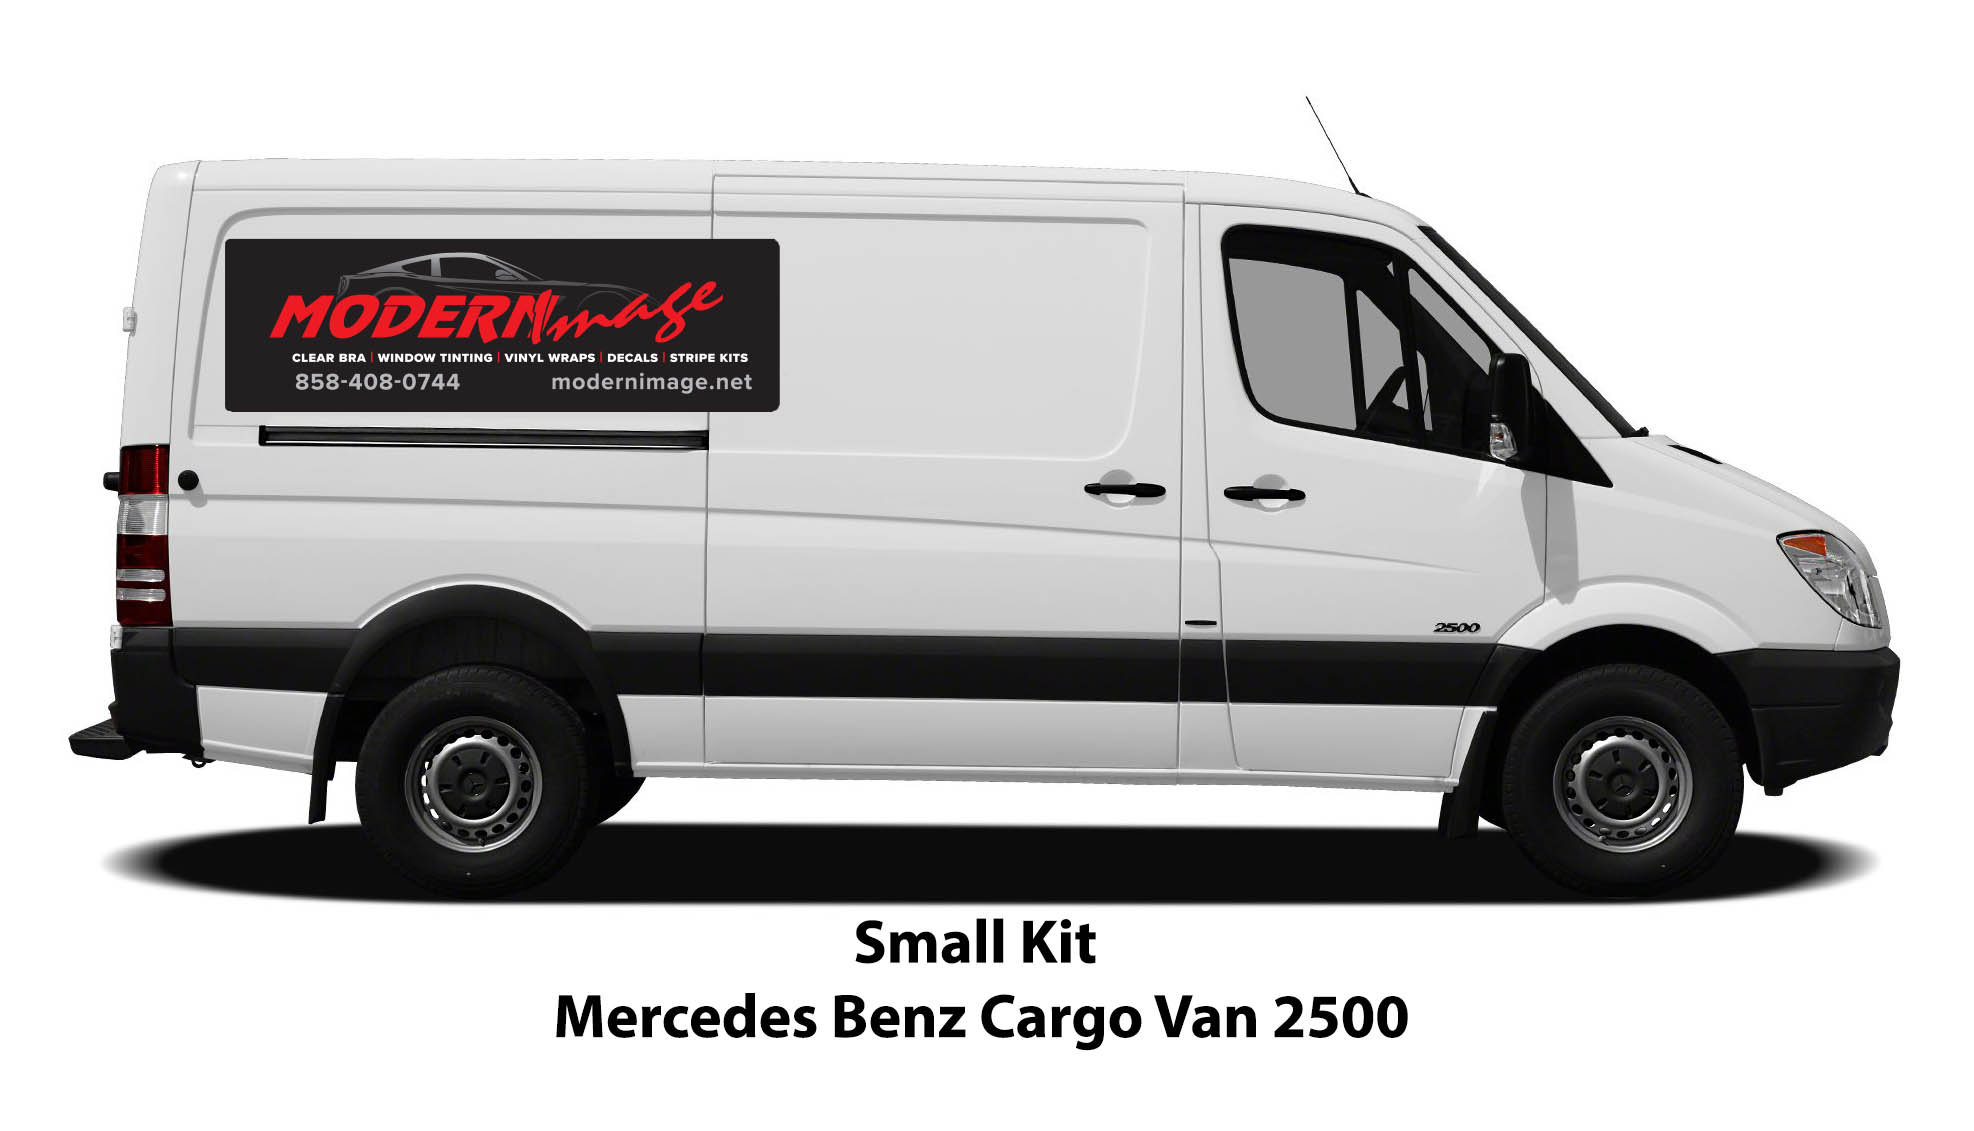 modern image small kit mercedes benz cargo van 2500 modern image. Black Bedroom Furniture Sets. Home Design Ideas